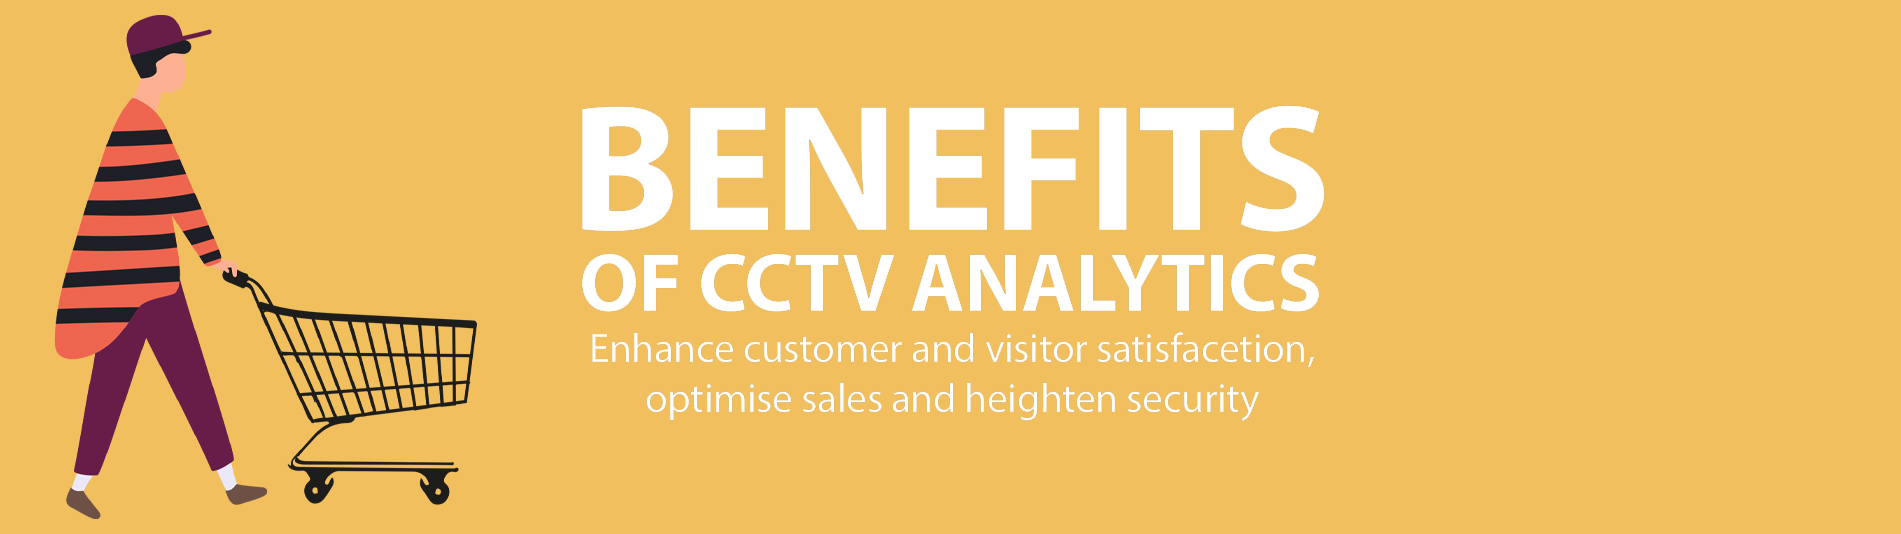 Benefits of CCTV Analytics